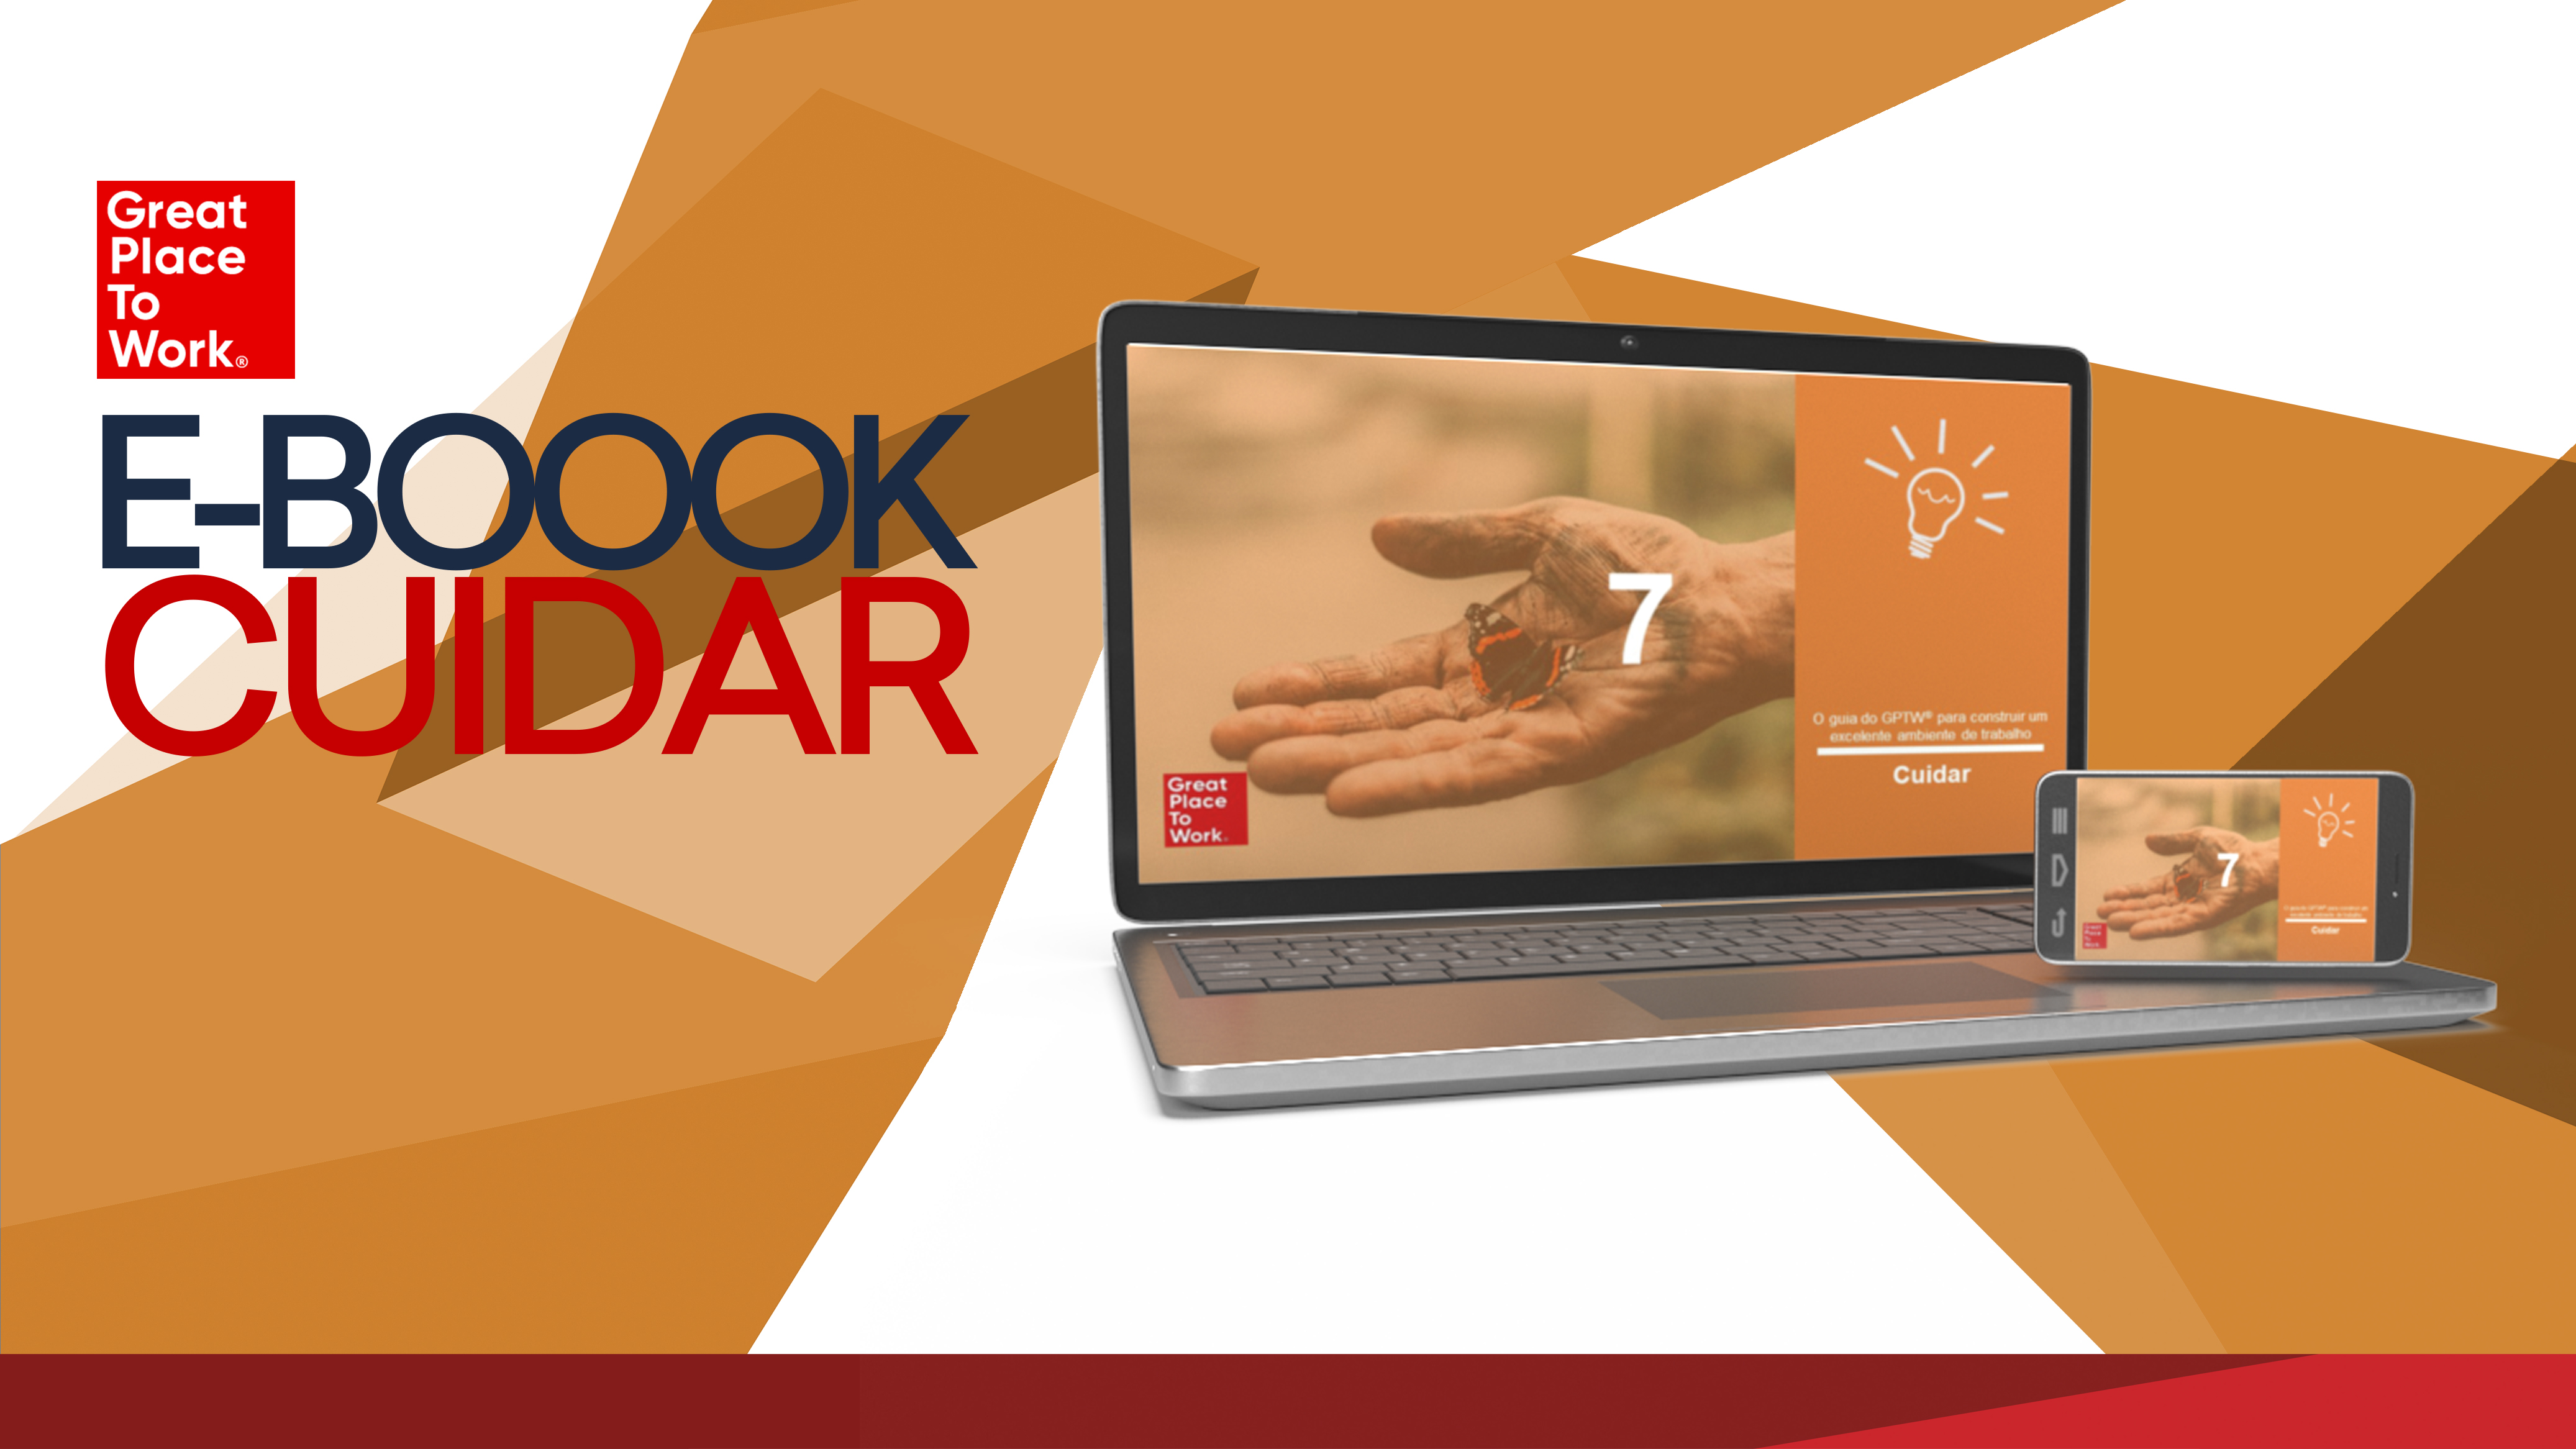 EBOOK cuidar thumb